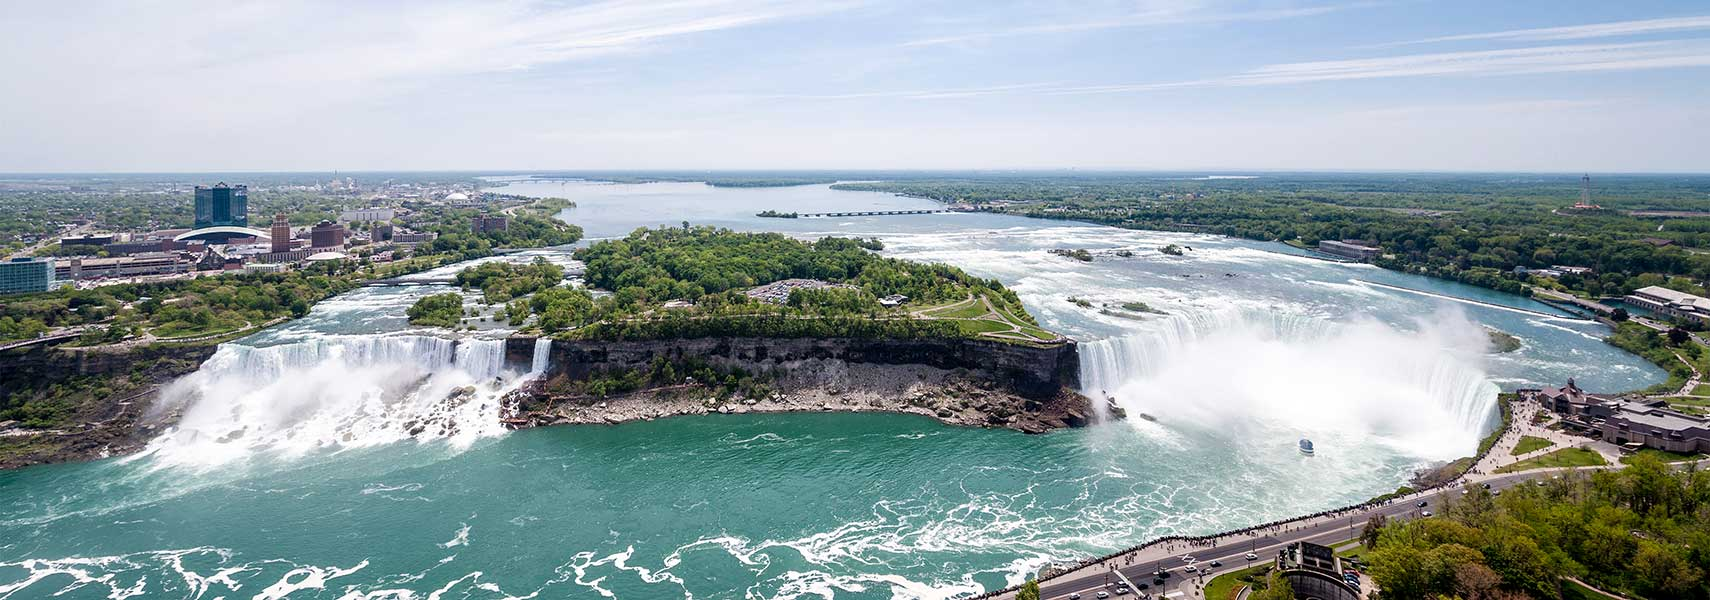 Niagara River and Niagara Falls, Bridal Veil (USA) and Horseshoe Falls (partly in Canada)